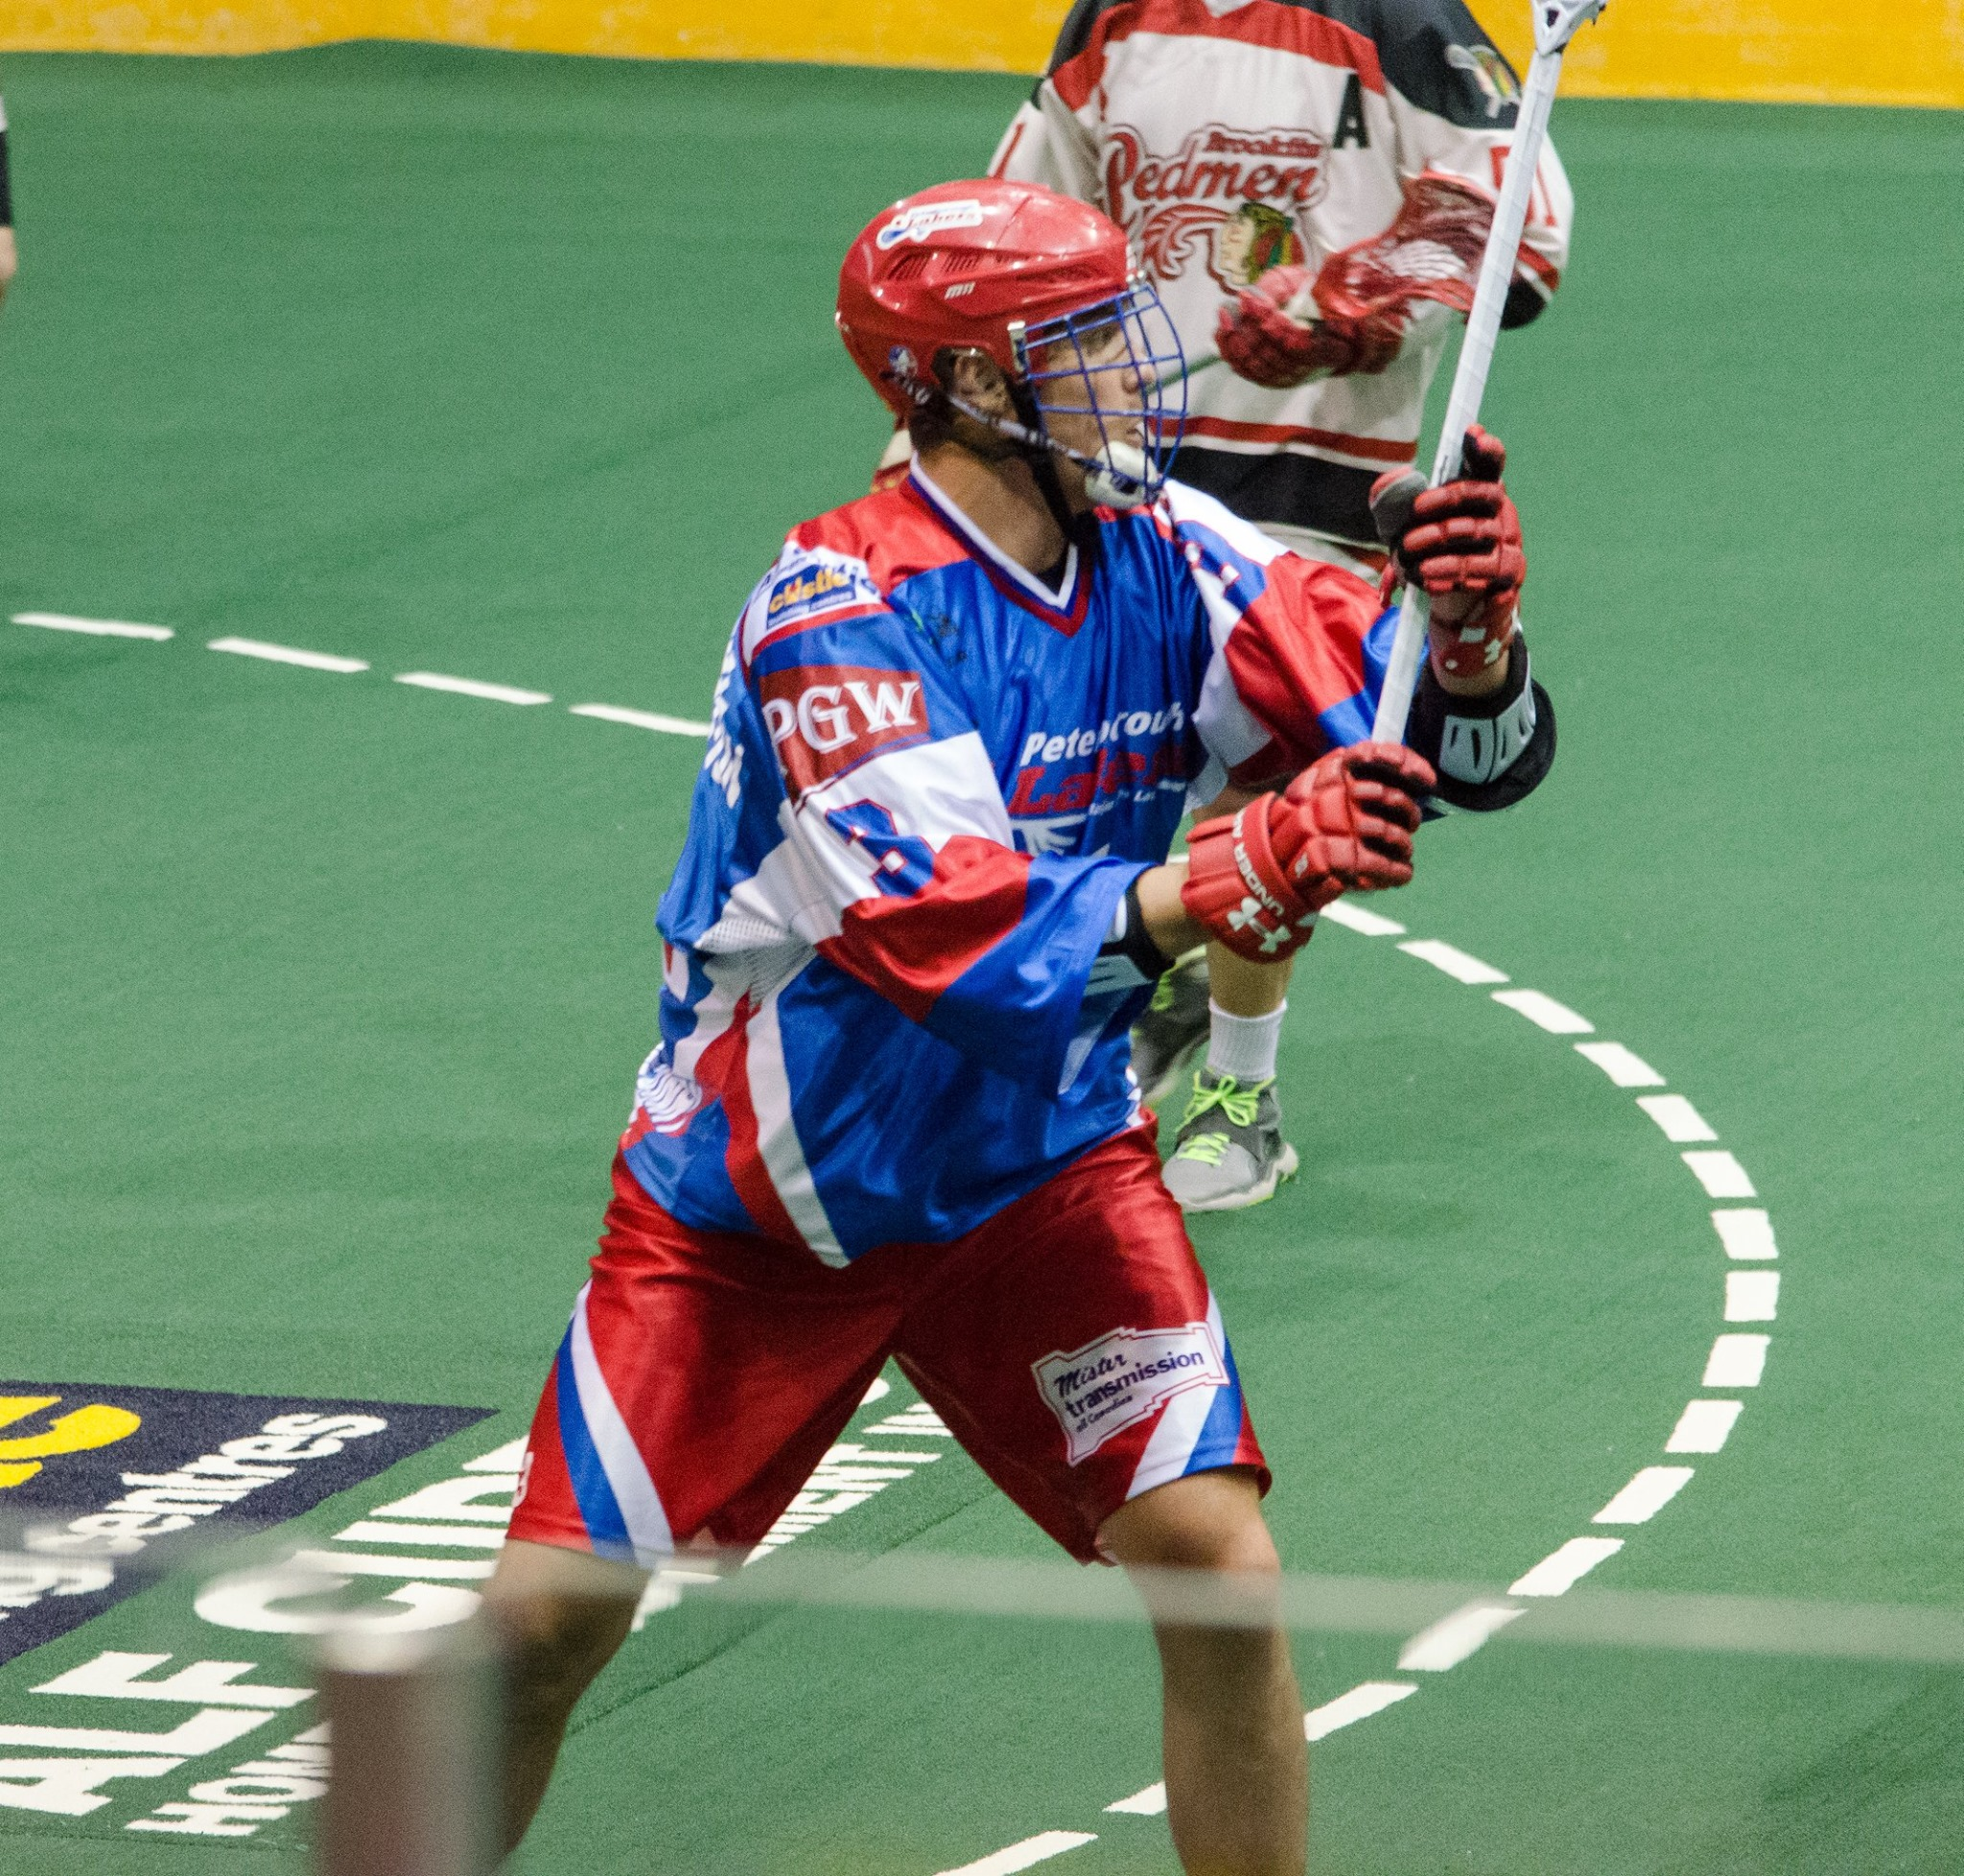 Brock Sorensen of the Peterborough Lakers in action against the Brooklin Redmen. (Photo credit: Kendall Taylor)